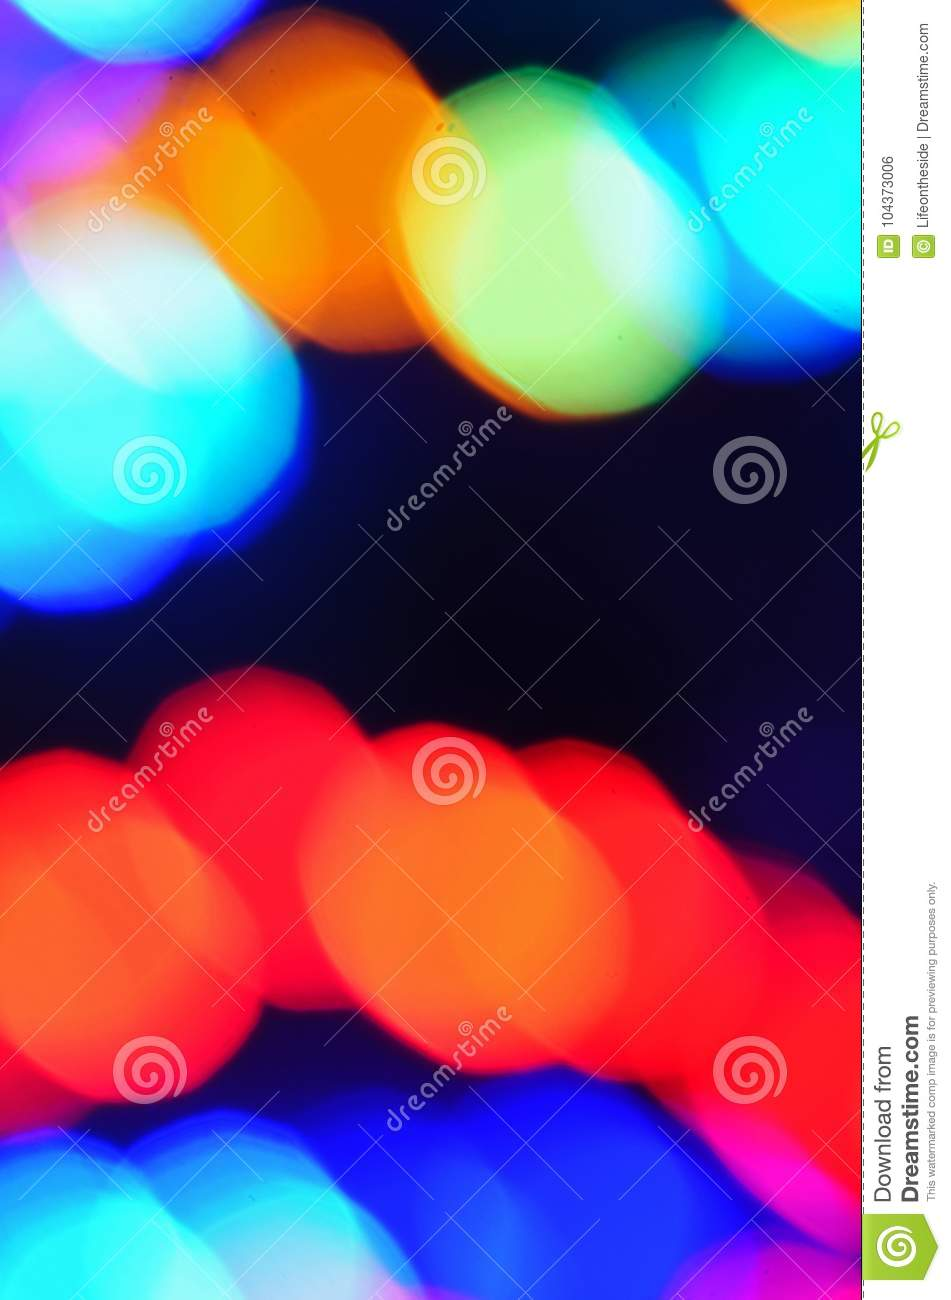 Colorful Blurred Festive Christmas Holidays Lights At Night Stock